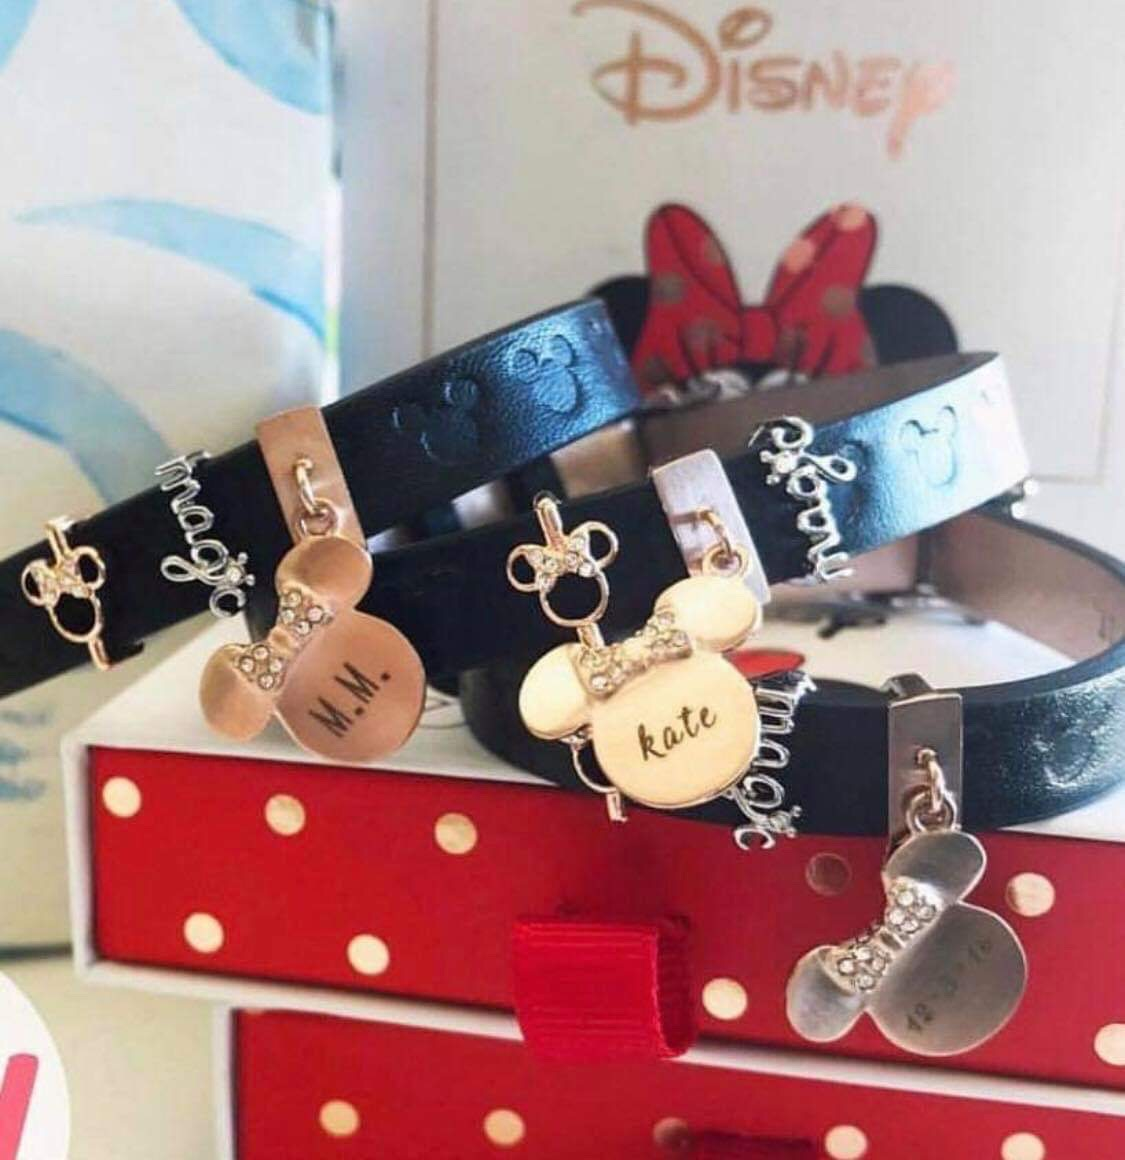 Save 40 Percent on Disney KEEP Charms and Such till November 6th! 5